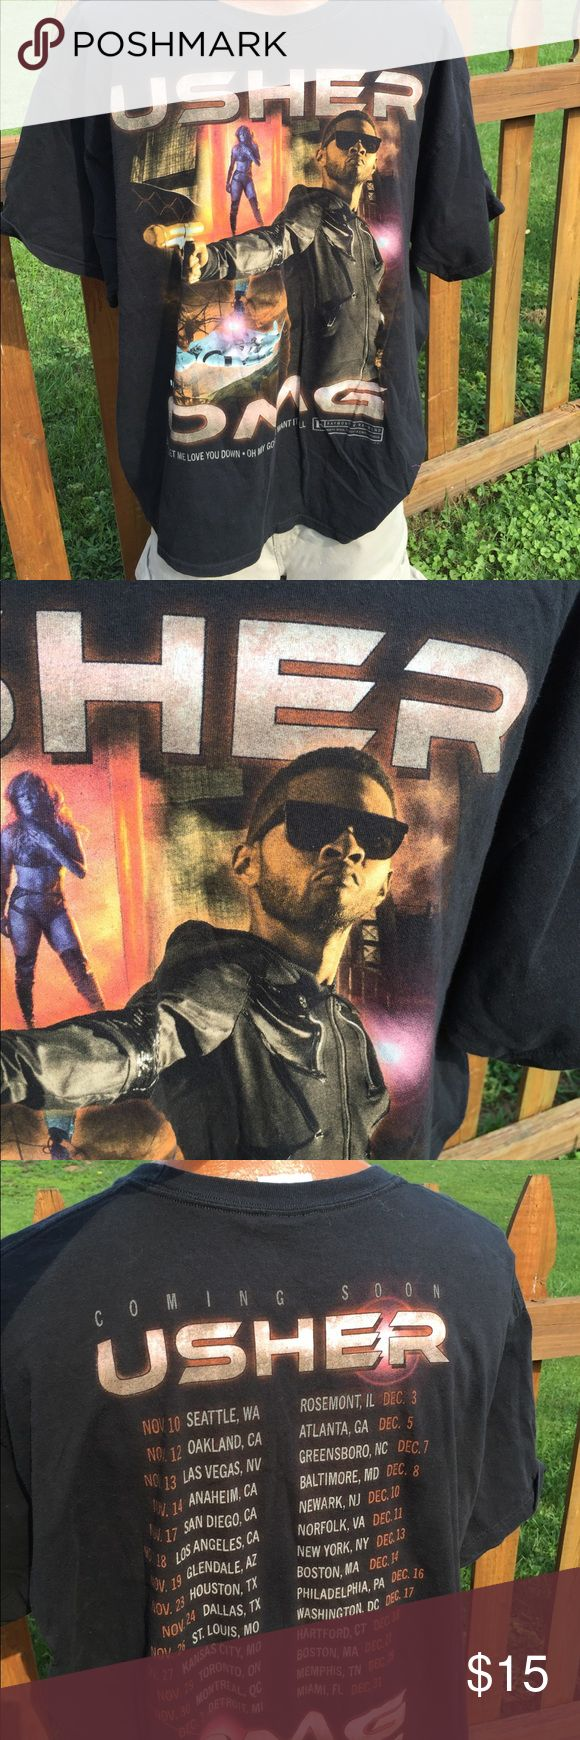 Usher OMG Concert Tour Shirt Size XXL Size XXL. Gently preowned. Be sure to view the other items in our closet. We offer  women's, Mens and kids items in a variety of sizes. Bundle and save!! We love reasonable offers!! Thank you for viewing our item!! Hanes Shirts Tees - Short Sleeve